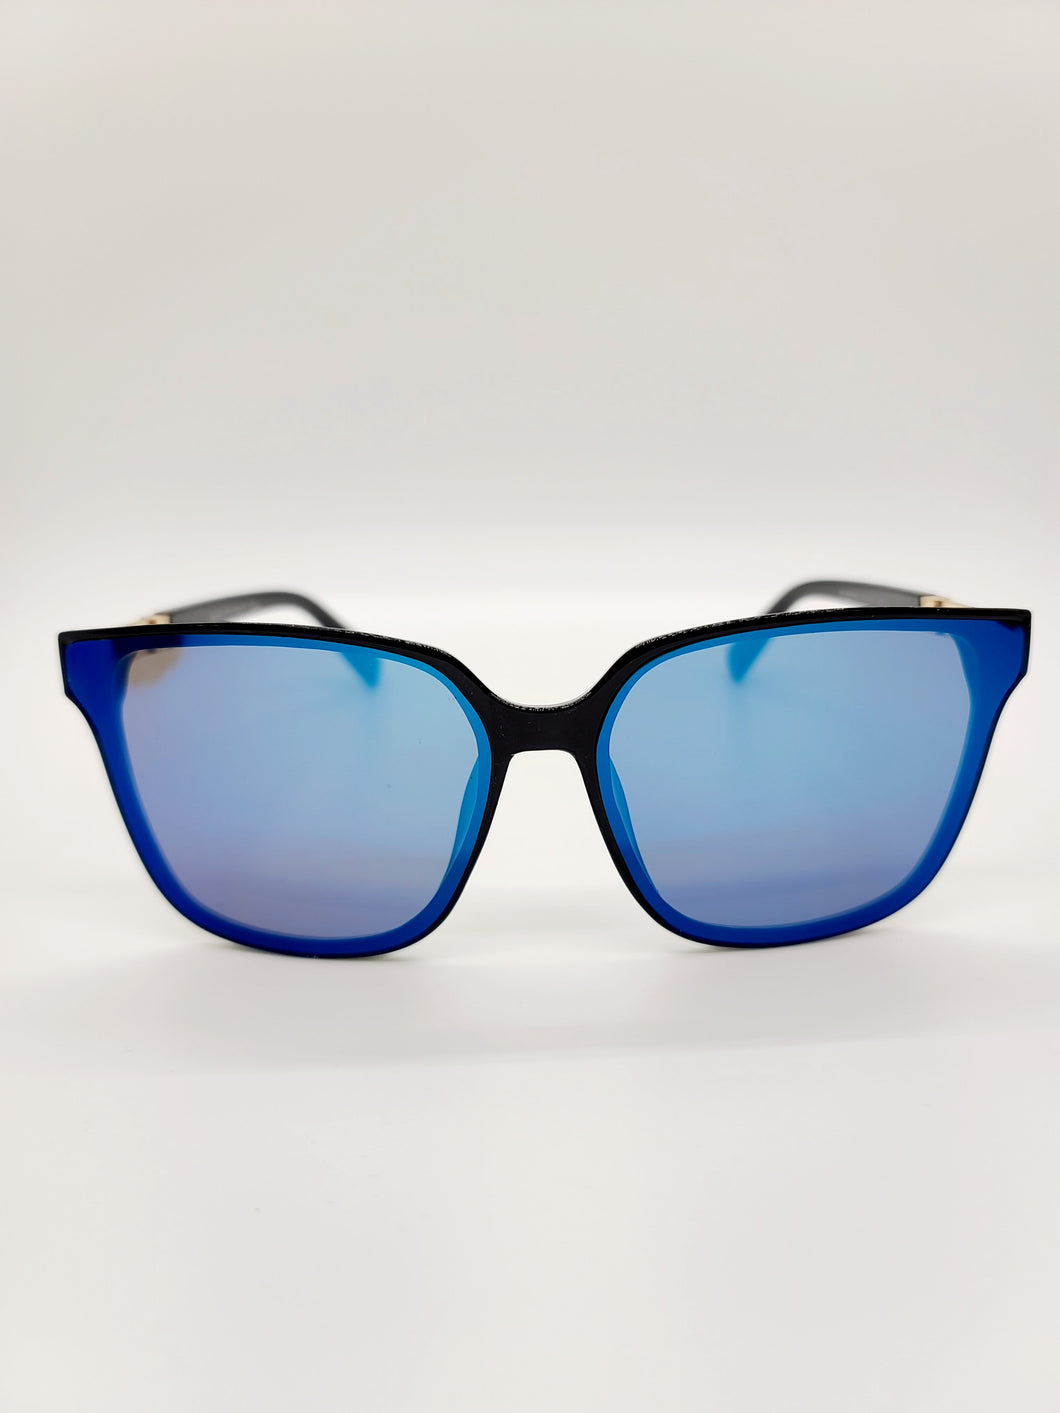 blue reflective lens sunglasses with metal arm detail